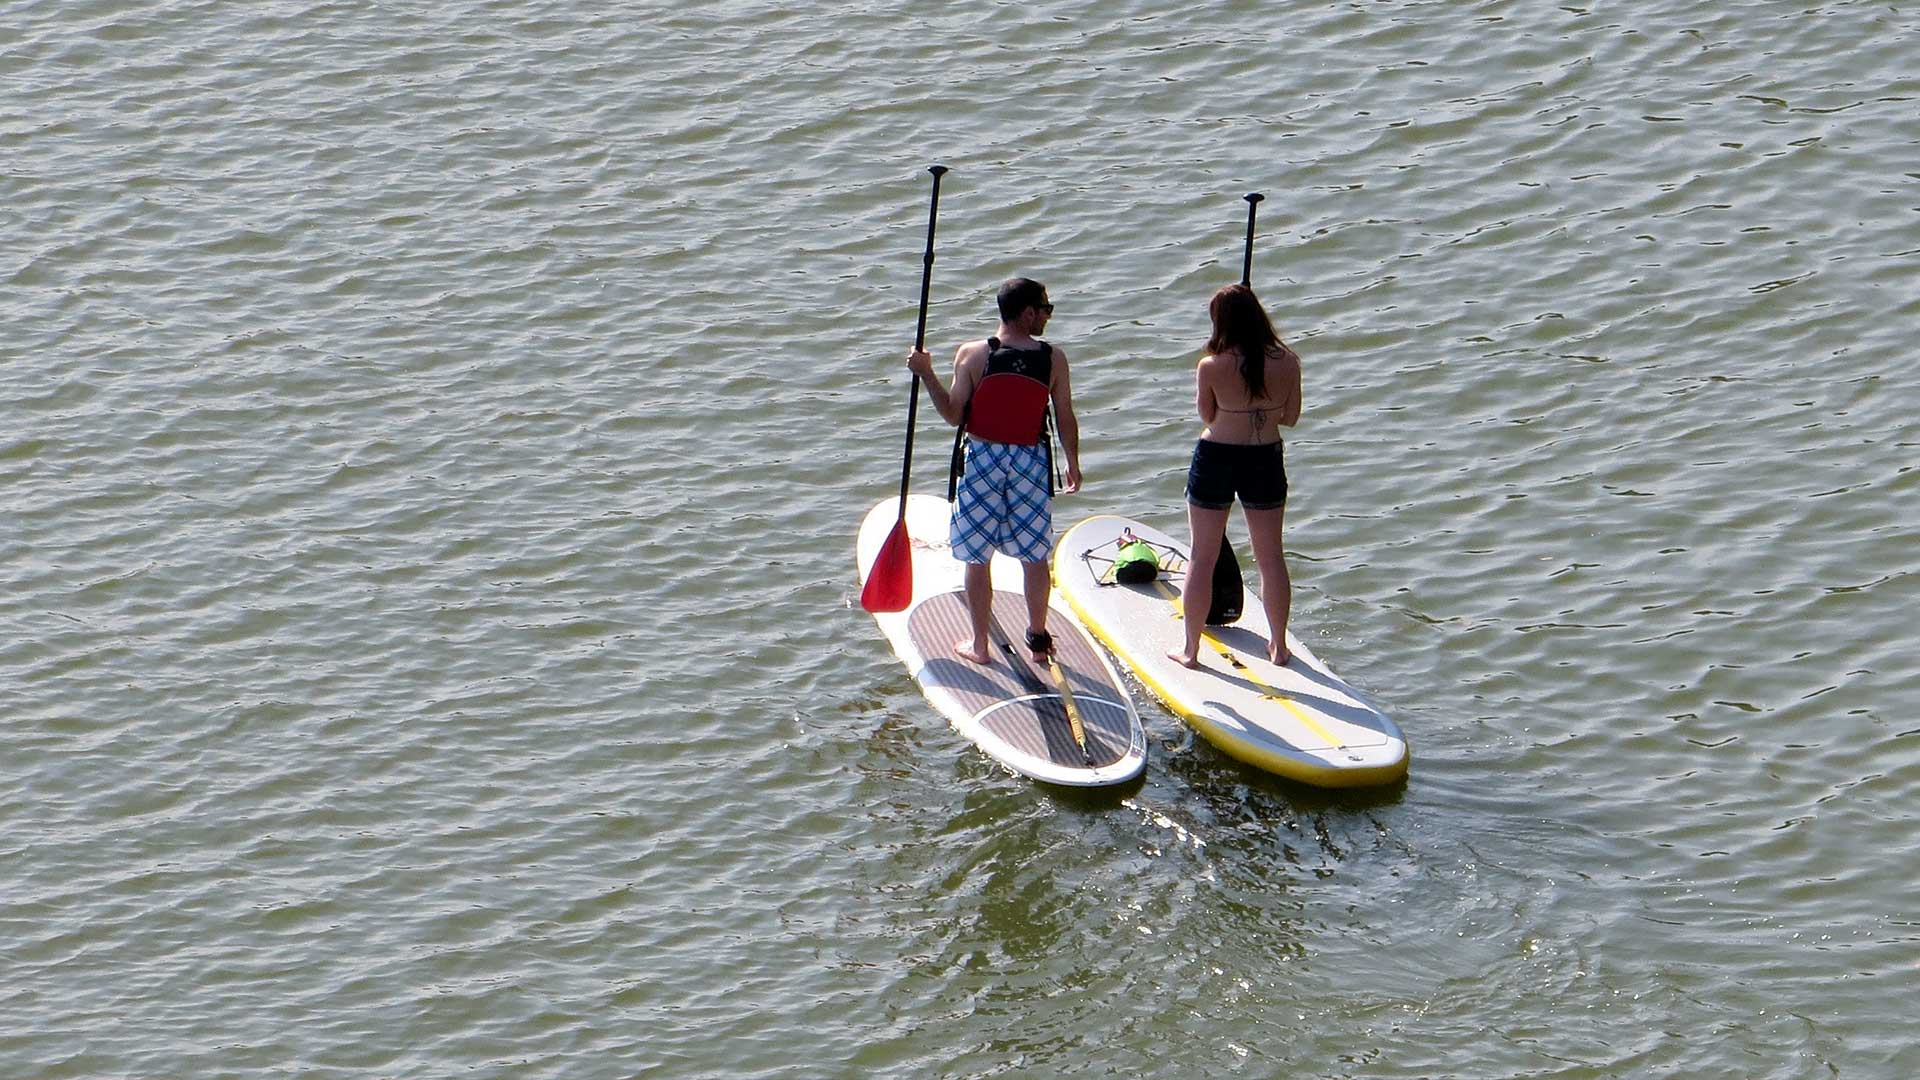 7-Paddle-Boarder-Pile-Up-Brings-Lake-Traffic-to-a-Standstill.jpg